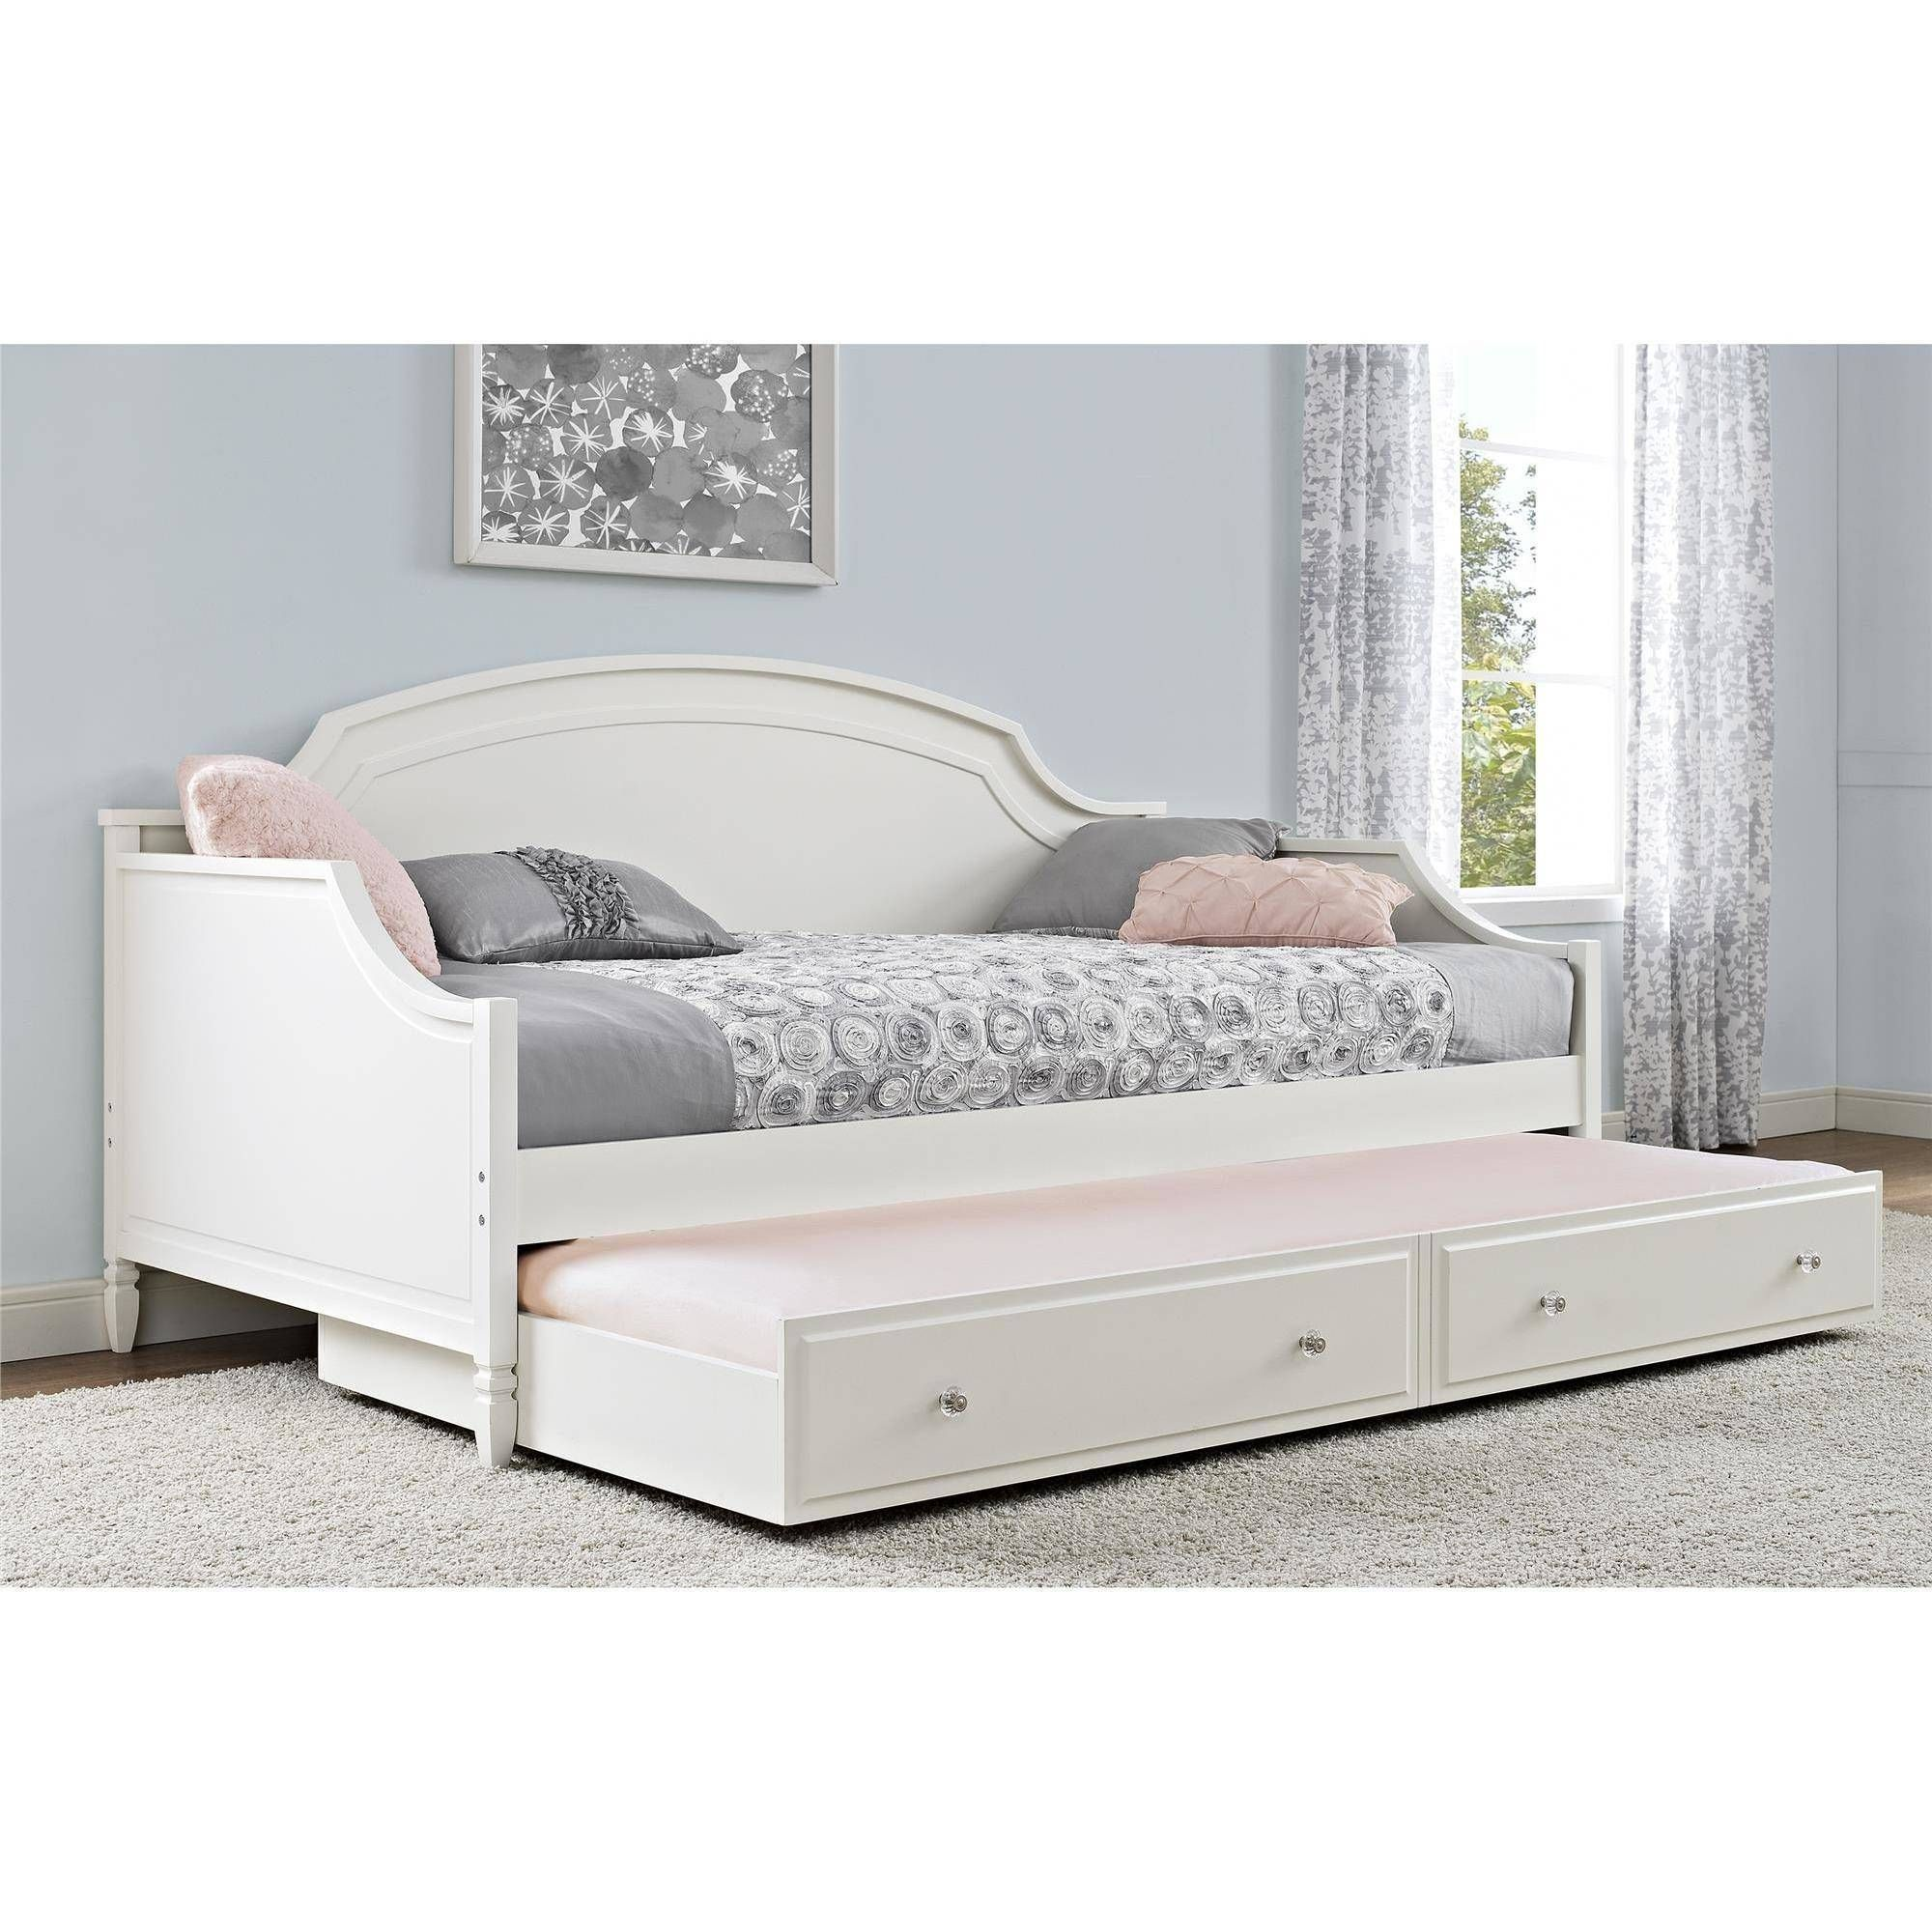 280 00 Better Homes and Gardens Lillian Twin Daybed White Walmart